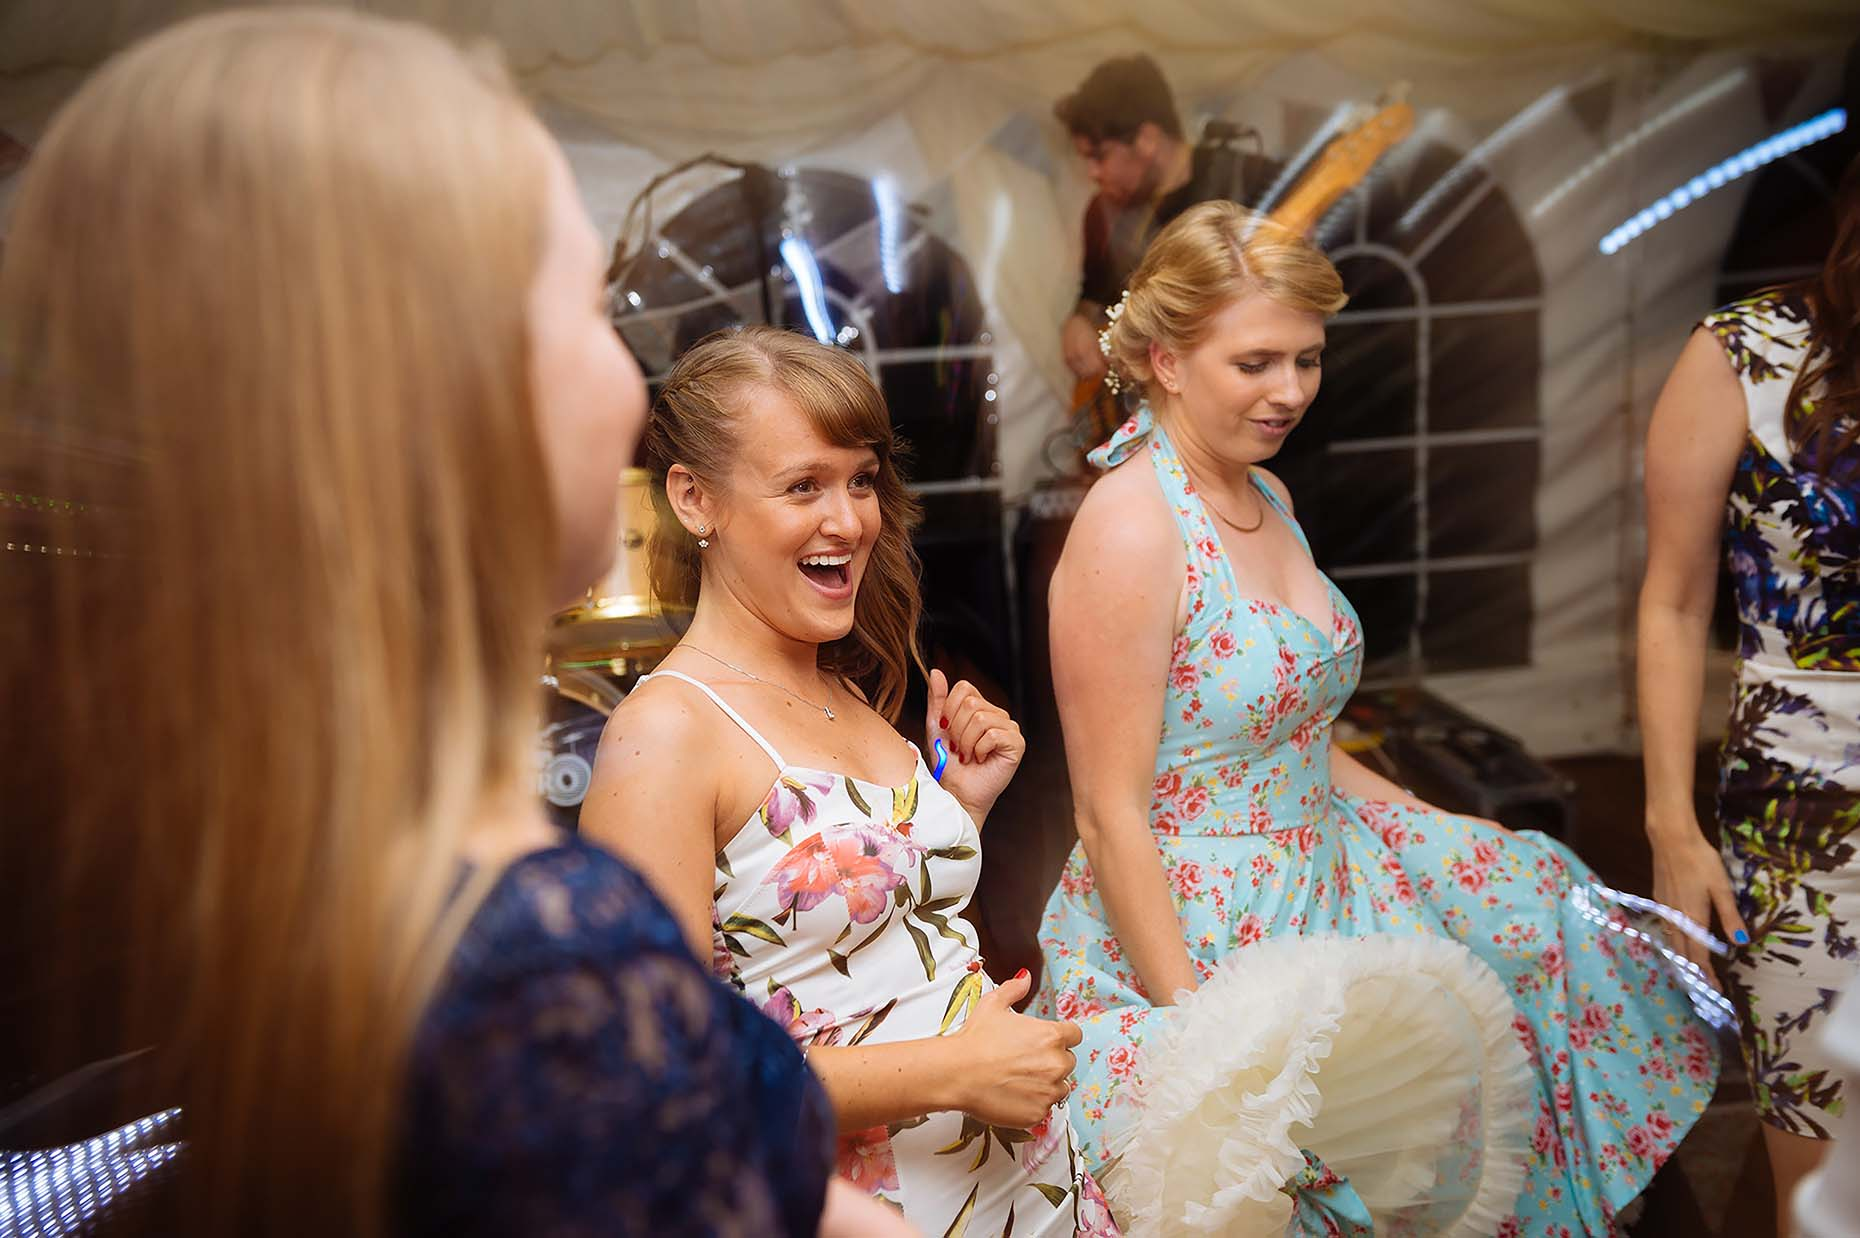 weymouth-dorset-wedding-photographer-dancing-guests-fun-documentary-27